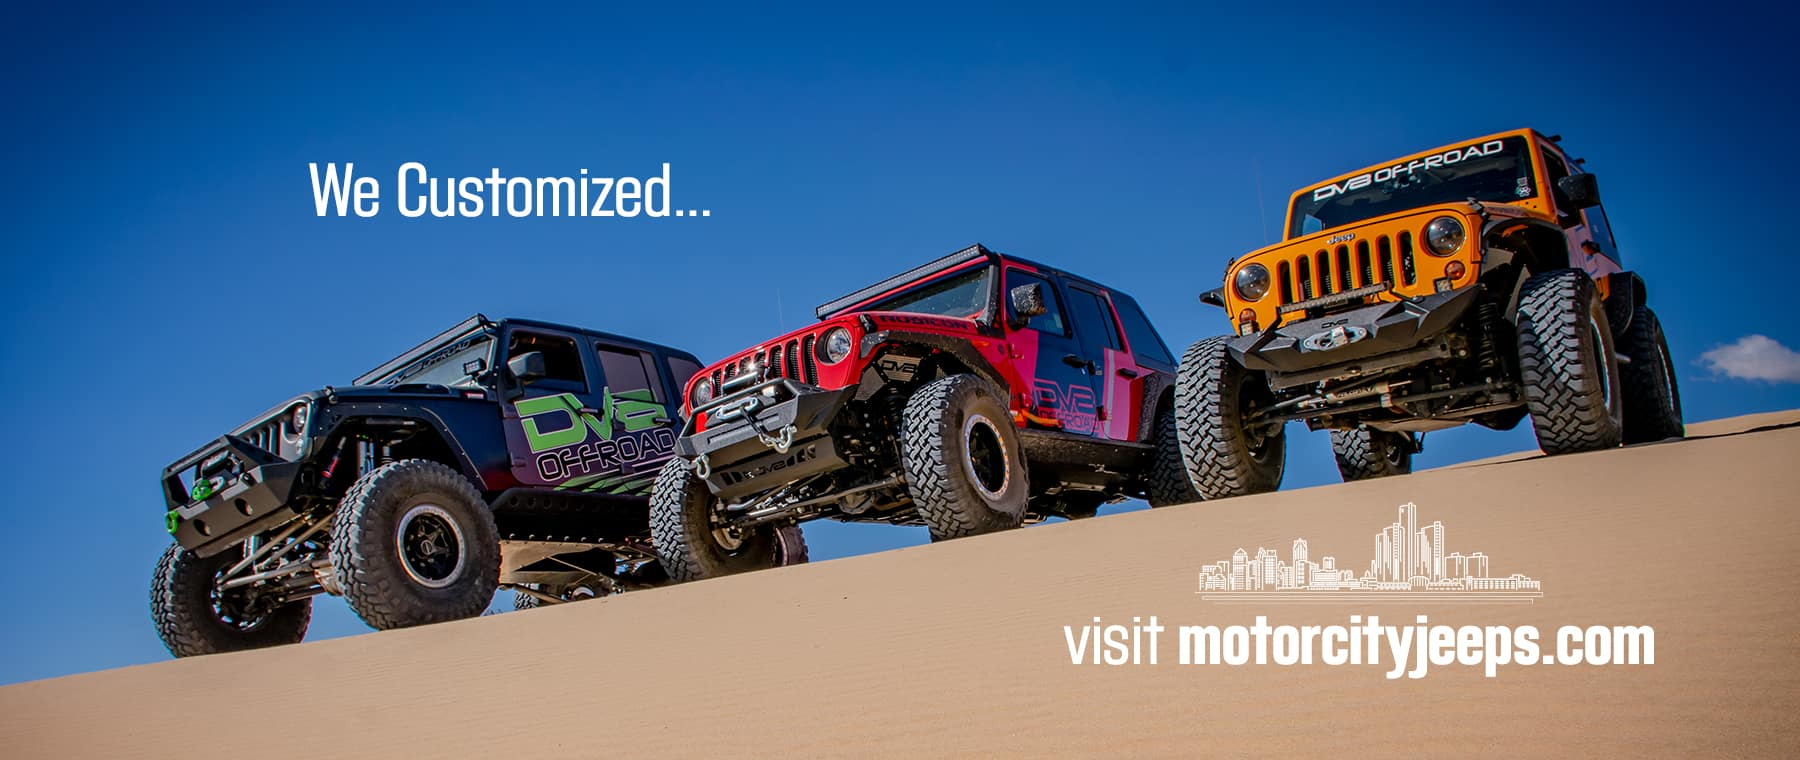 motorcity_jeep_banner10